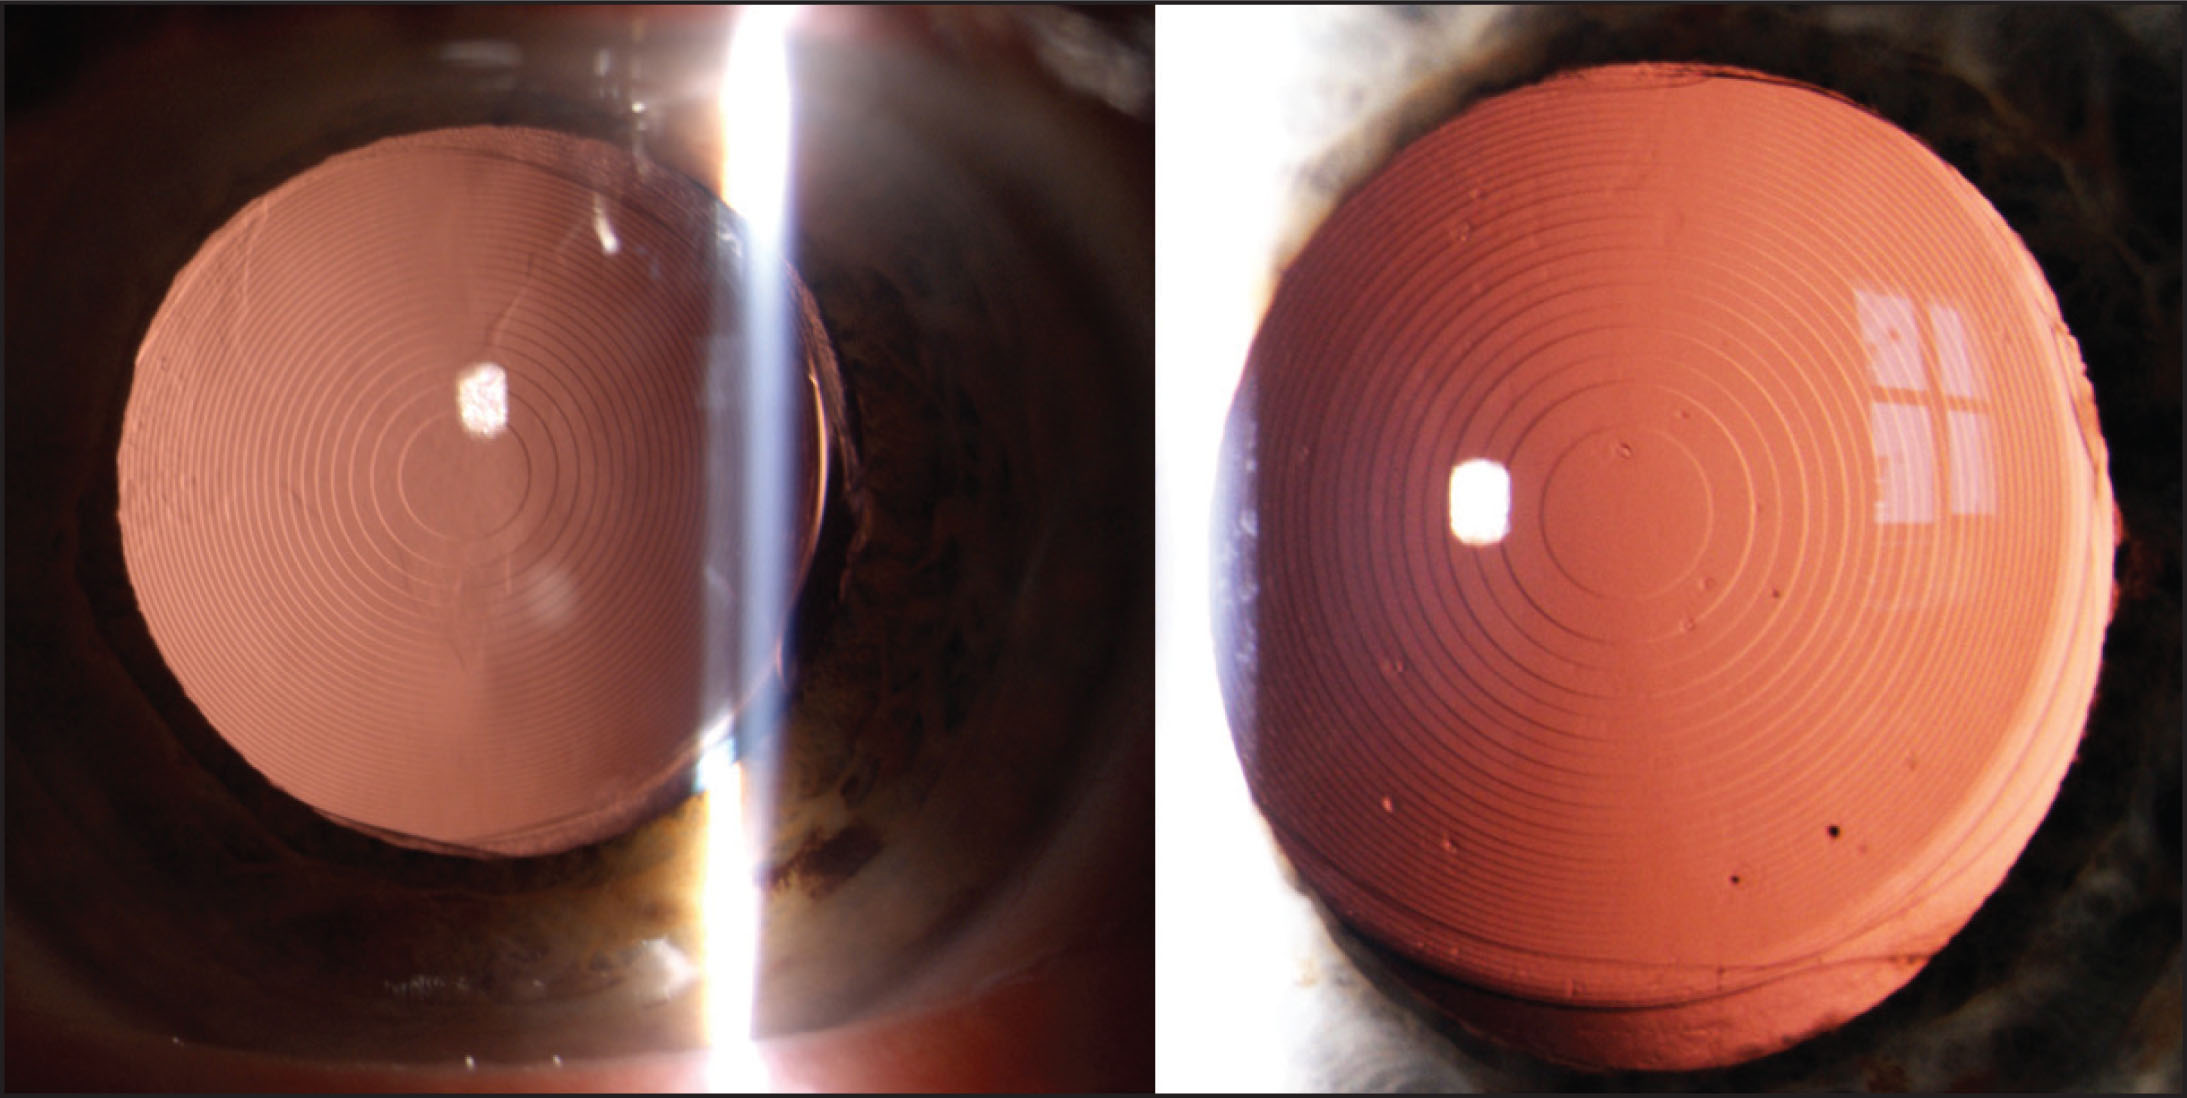 Intraocular lenses used in the study: (A) the bifocal diffractive IOL AT LISA 801 (Carl Zeiss Meditec, Jena, Germany) and (B) the trifocal diffractive IOL AT LISA tri 839 MP (Carl Zeiss Meditec).